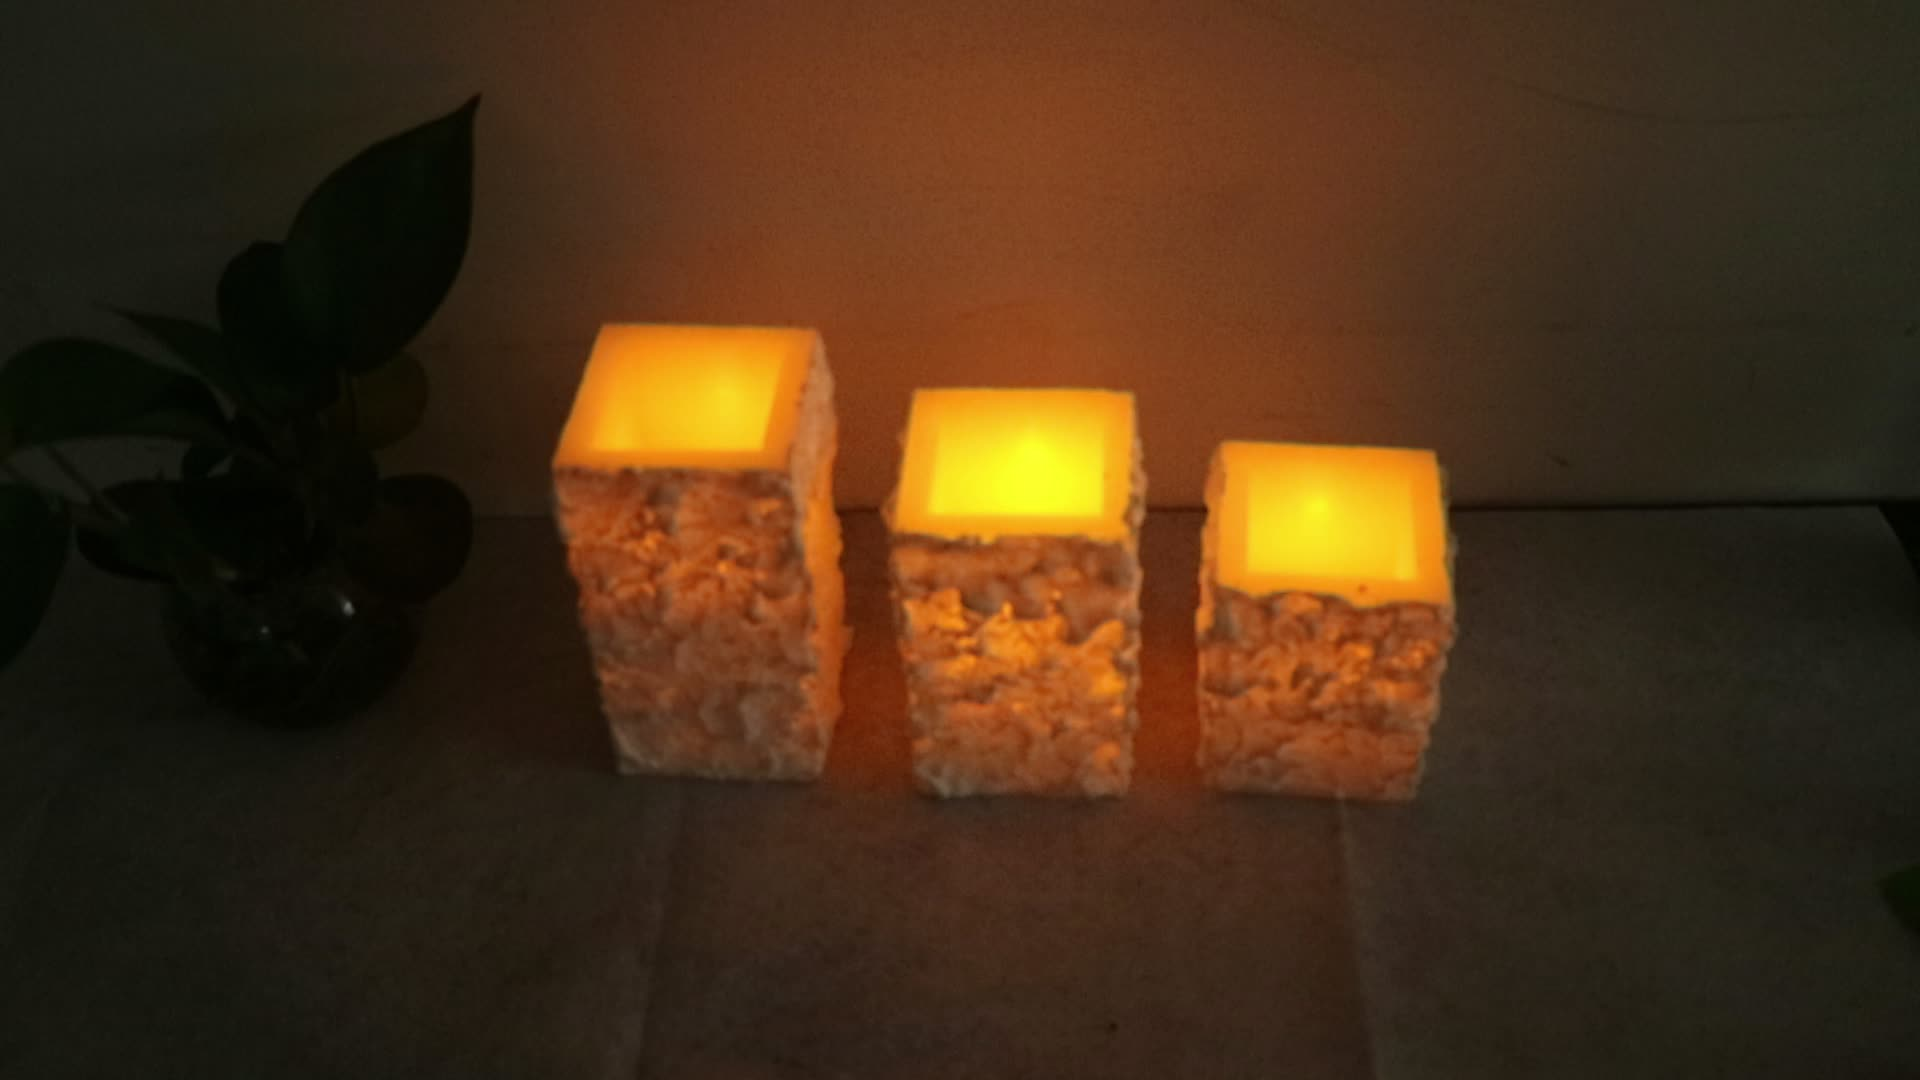 Cheap Flameless LED Candles with Timer and Letter Printing Gardenline Flameless Lantern with Led Candle